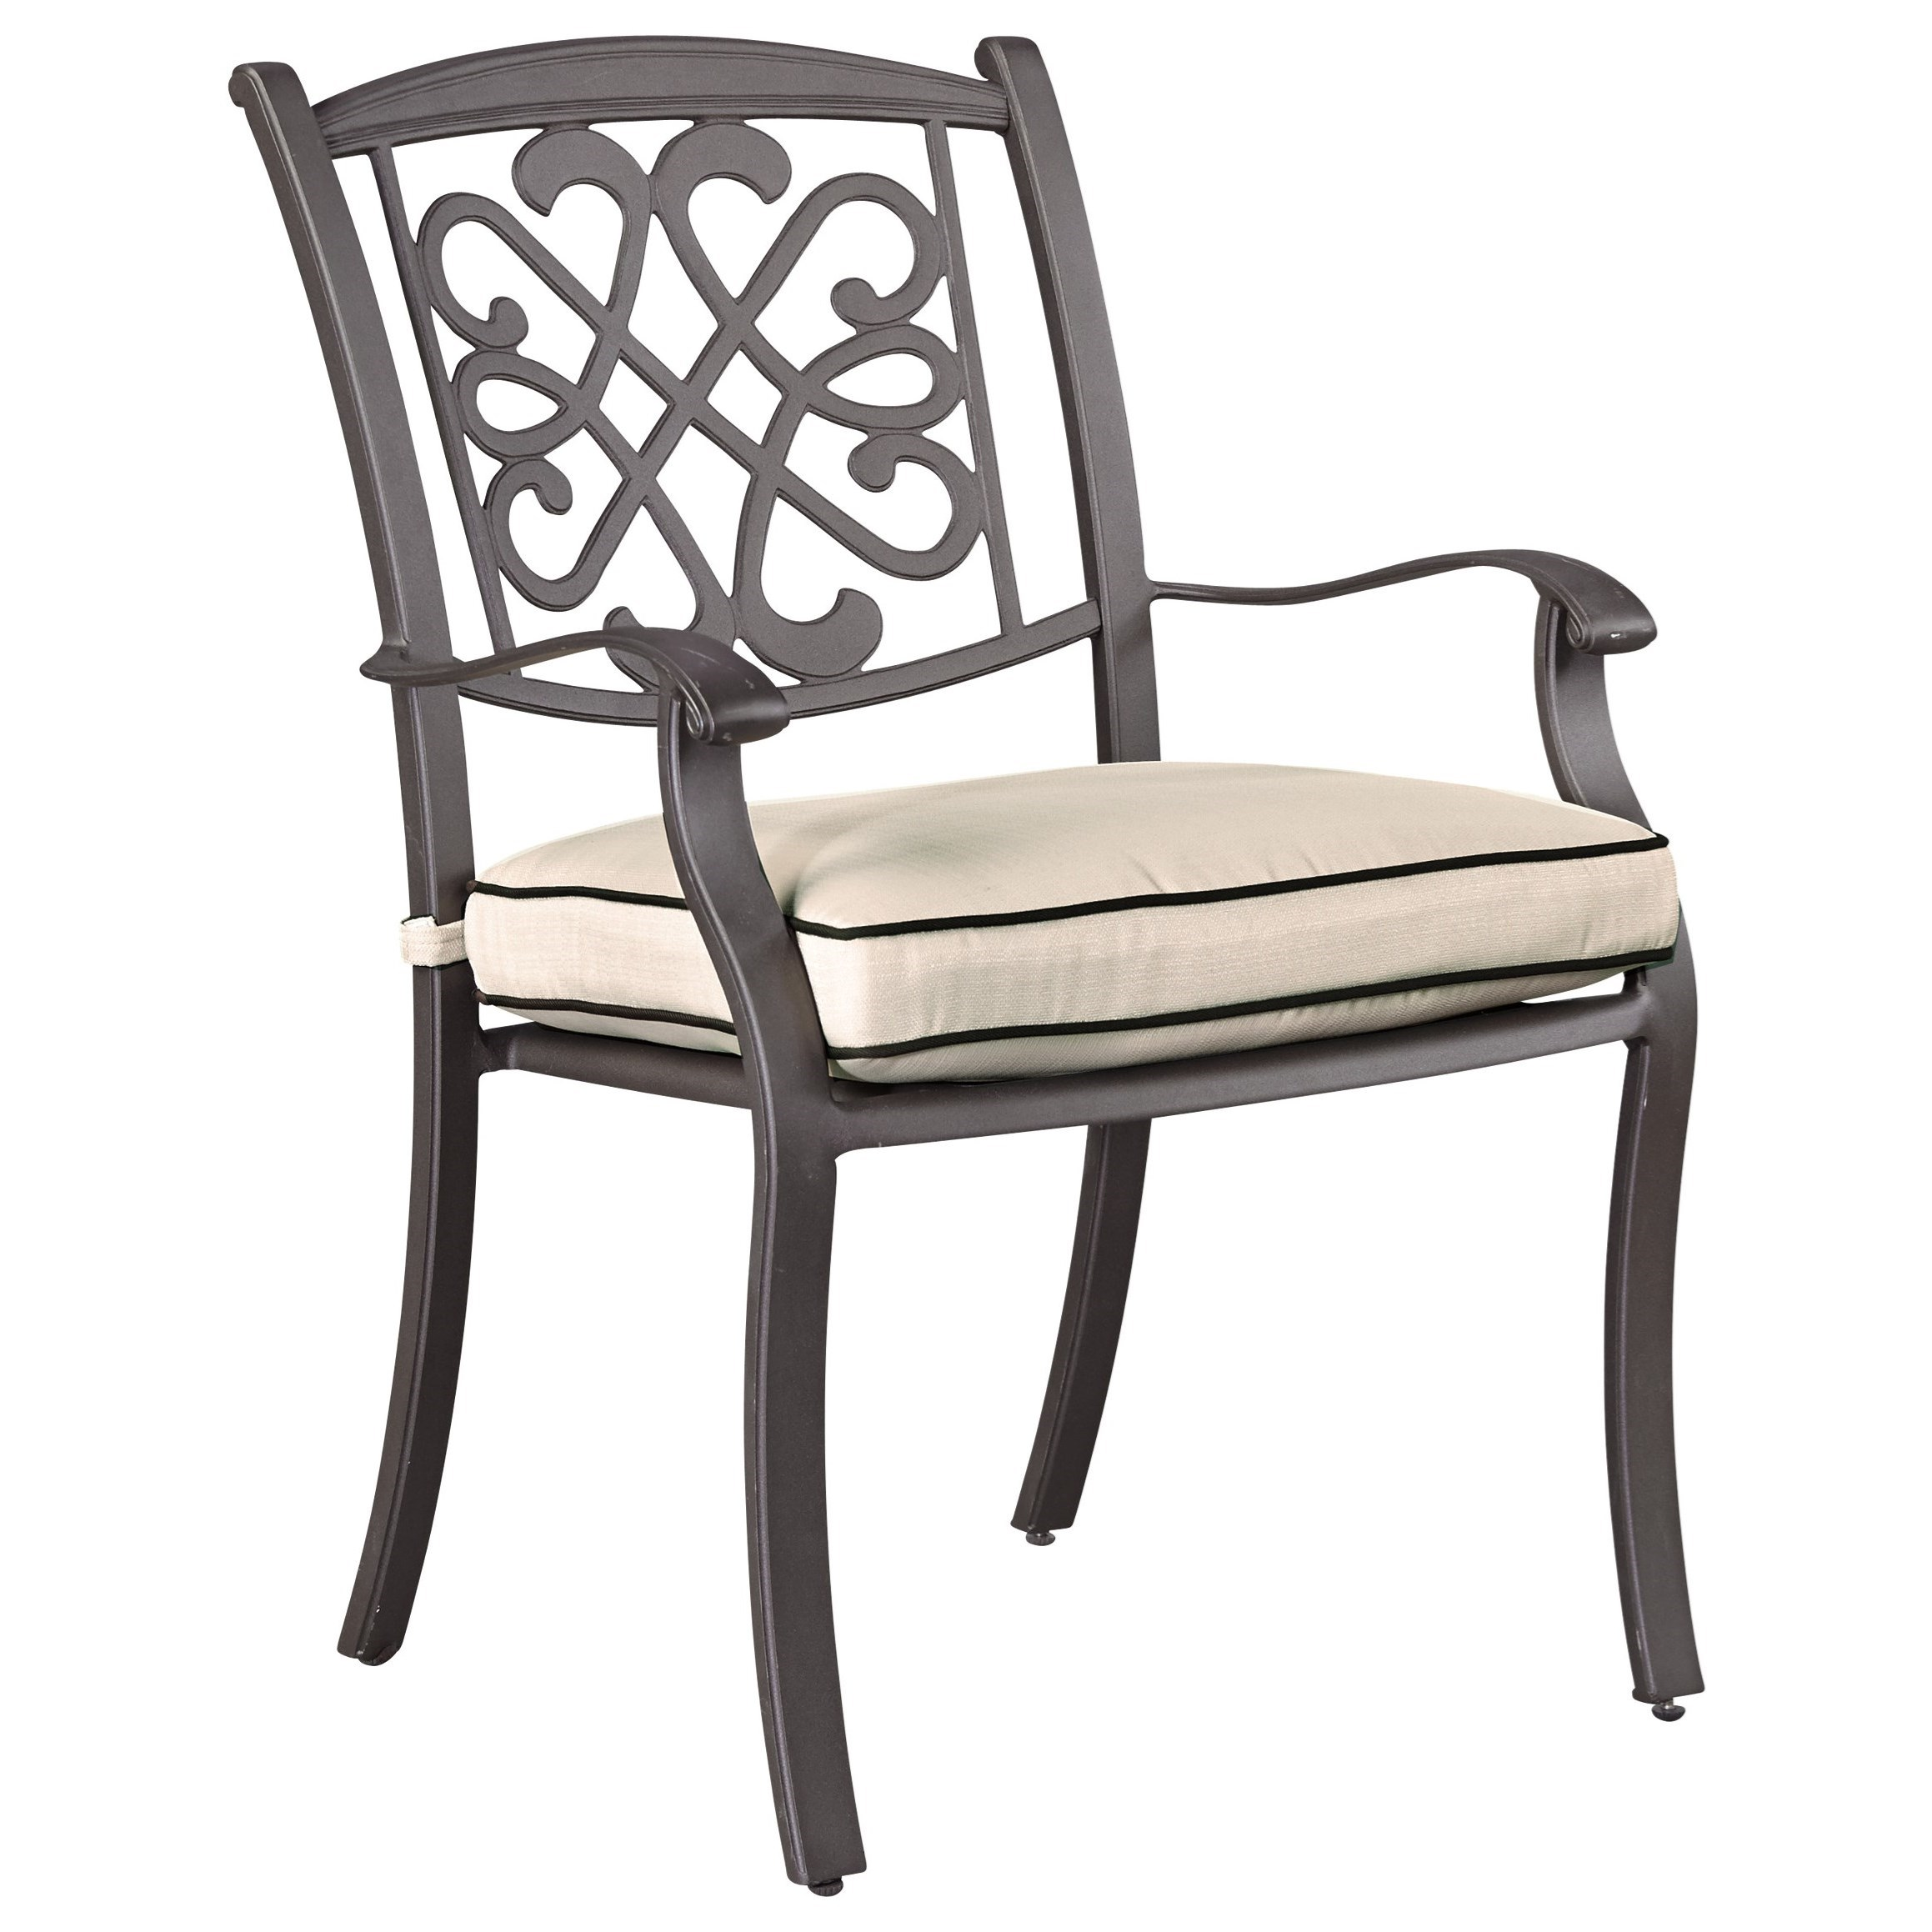 Signature Design by Ashley Burnella Set of 4 Outdoor Chairs with Cushion - Item Number: P456-601A